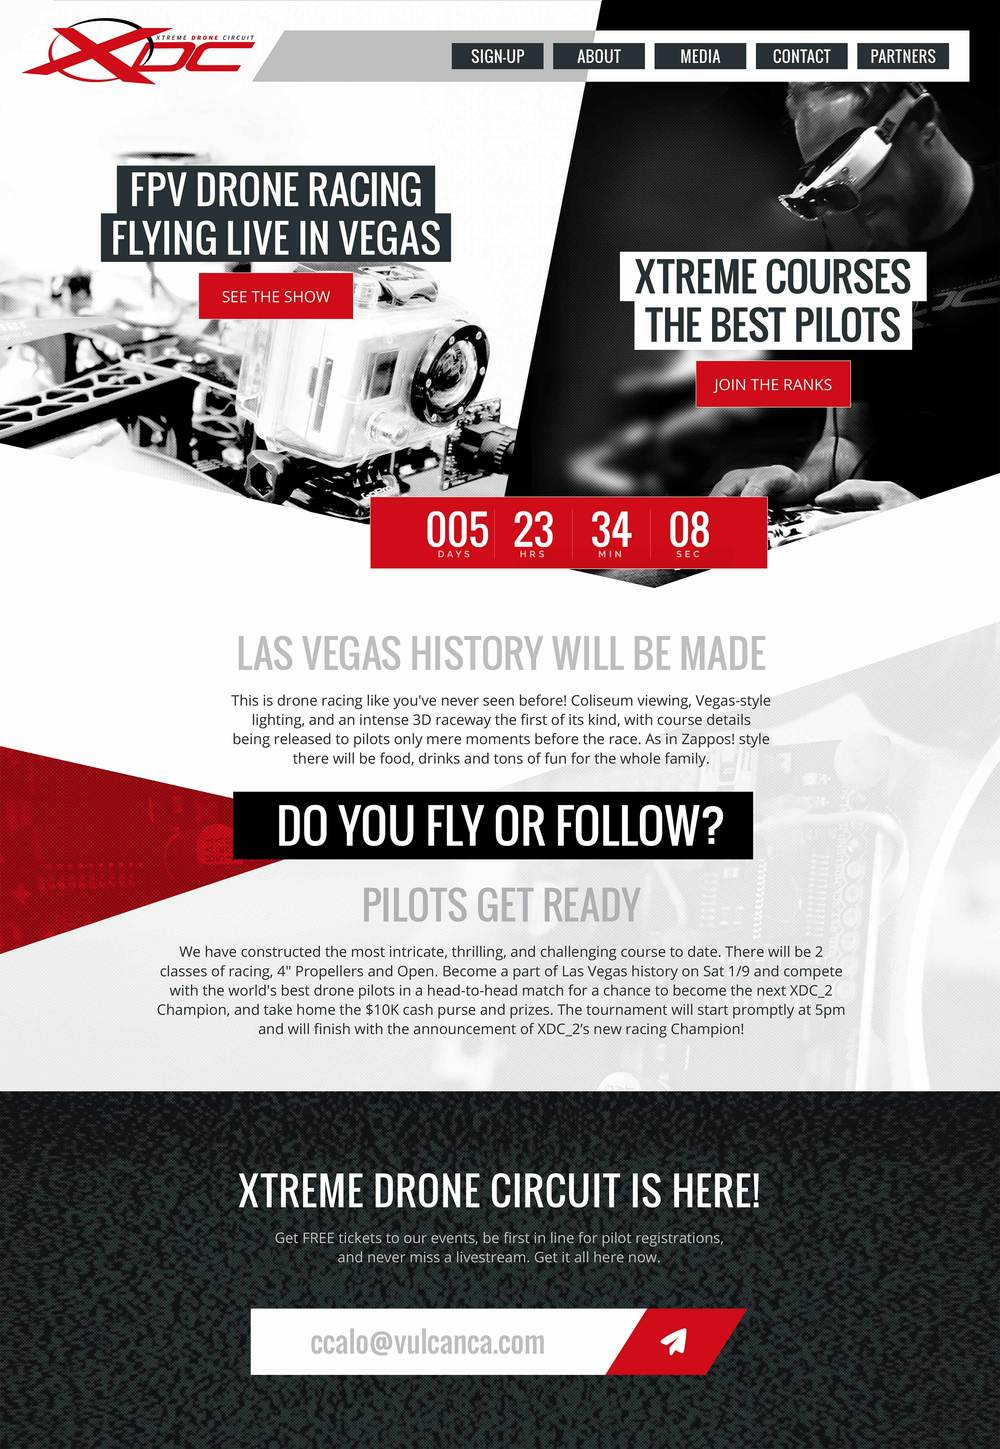 Website Design and Development for Live Event Ticket Sales - http://www.xdcracing.com